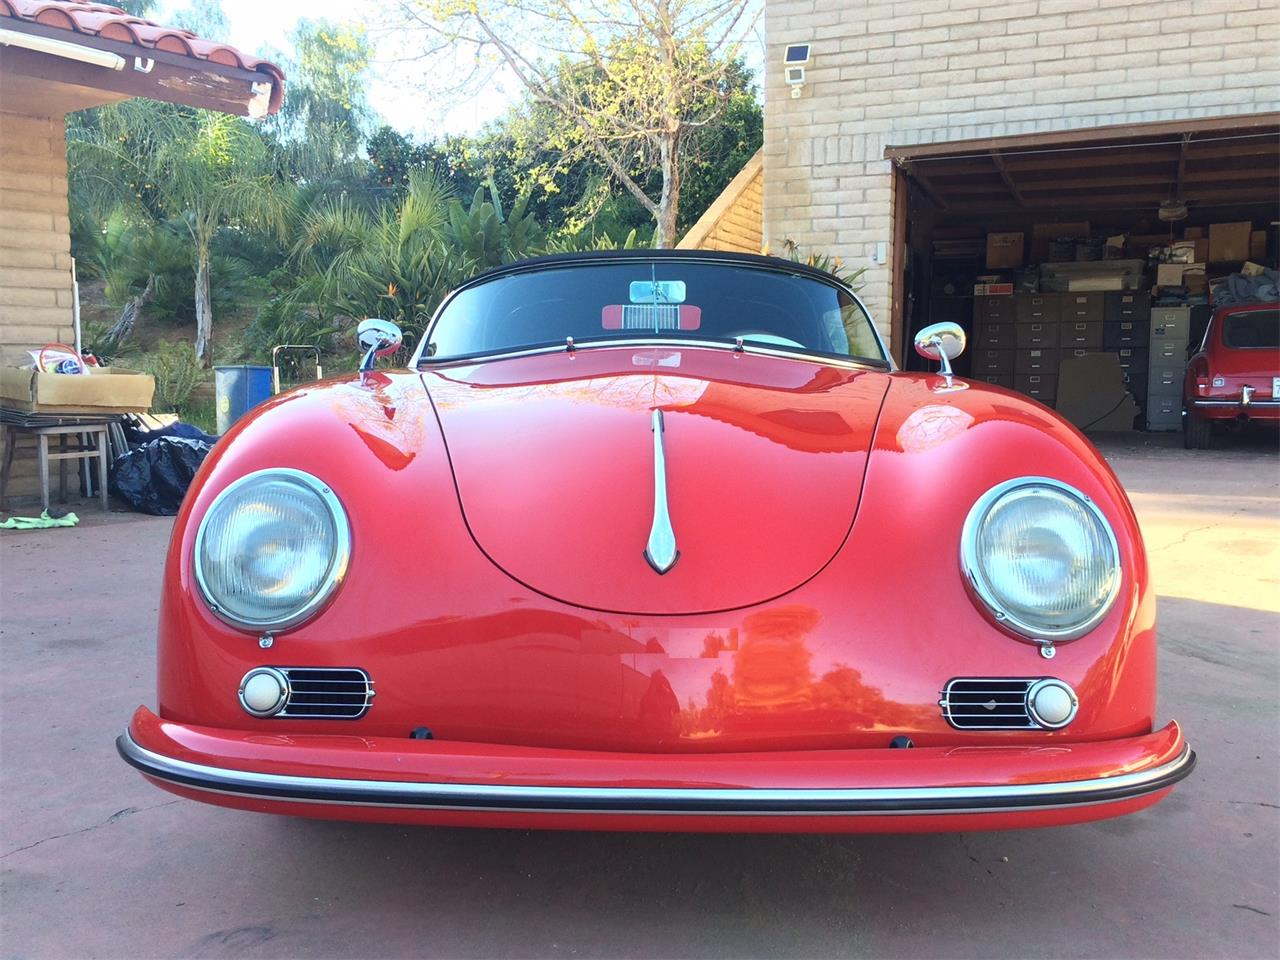 Large Picture of Classic 1957 Porsche Speedster located in Oceanside California Auction Vehicle Offered by Beverly Hills Motor Cars - N9I6